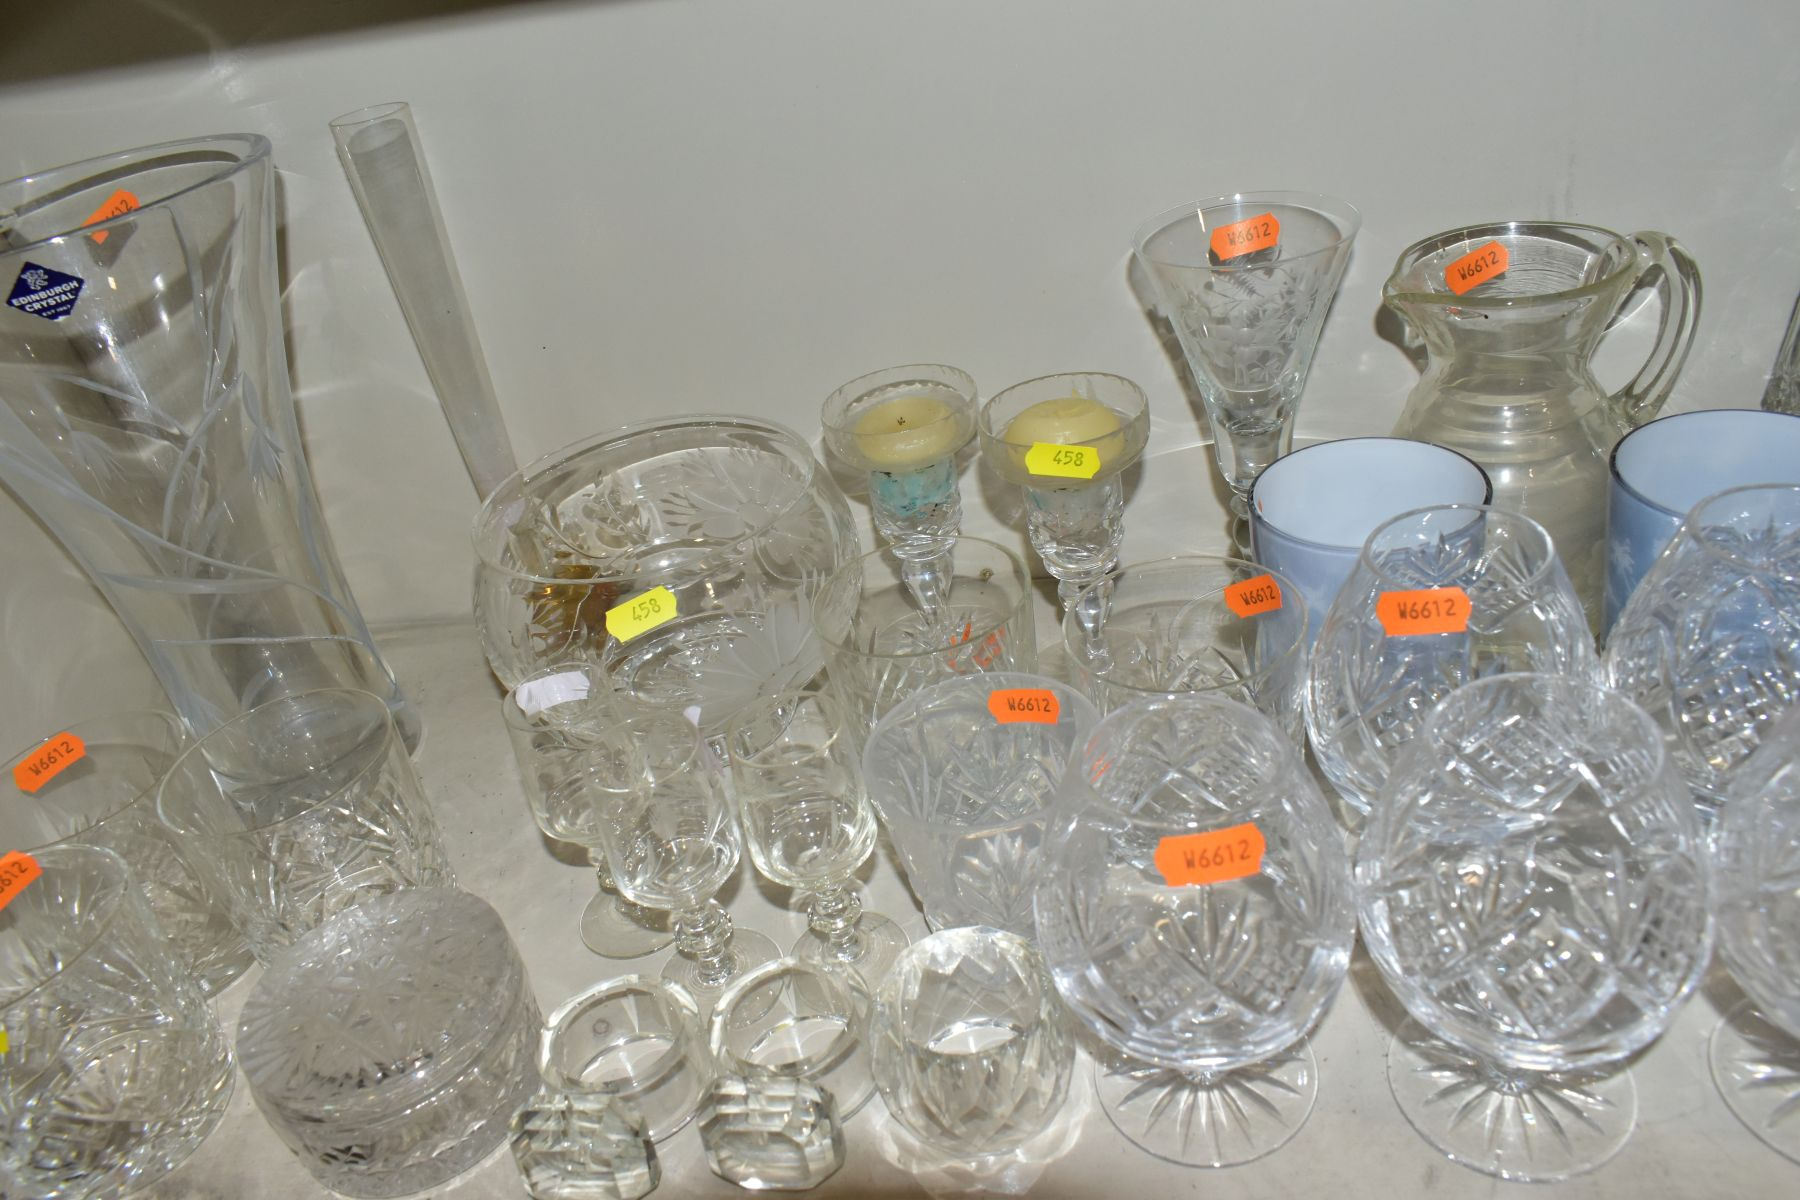 A SMALL QUANTITY OF CLEAR AND COLOURED GLASSWARE, including an Edinburgh Crystal vase, height 25. - Image 9 of 10